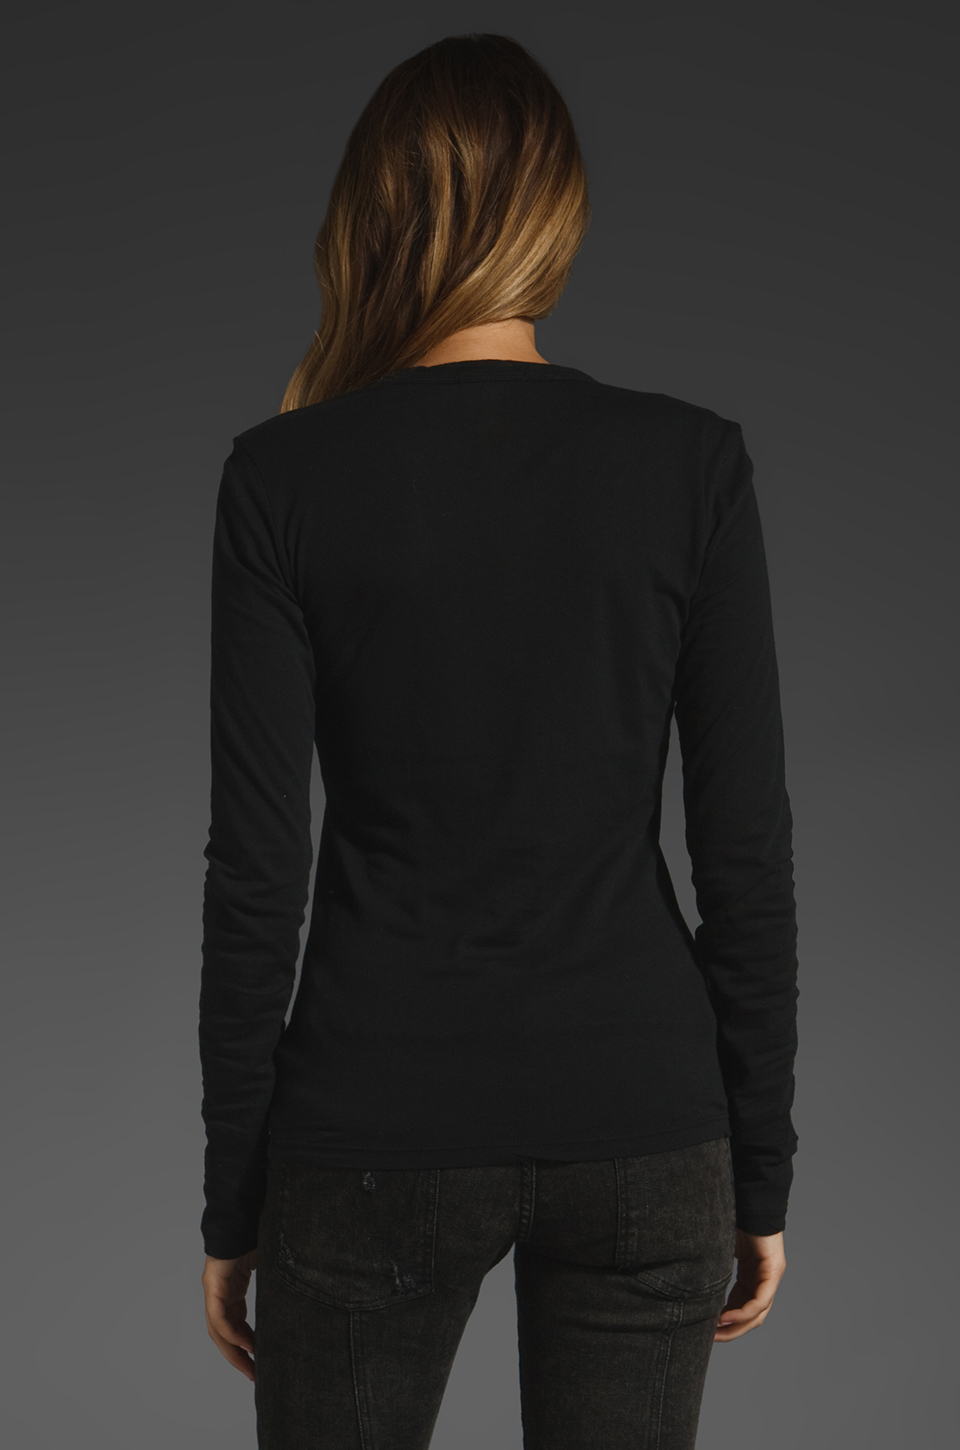 James Perse Long Sleeve Crew Neck in Black